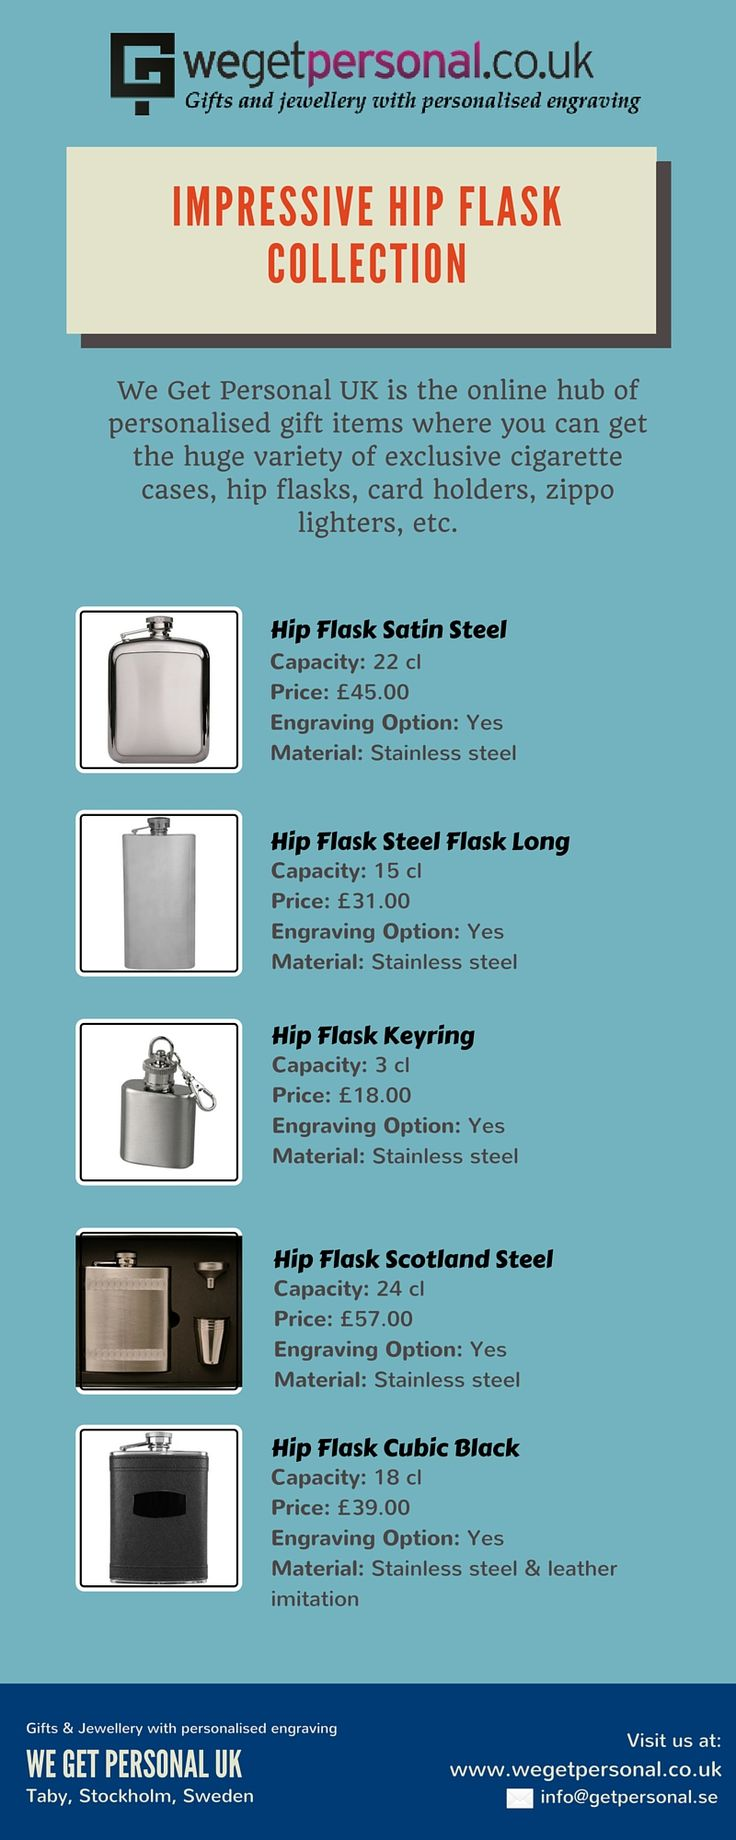 Gift personalised products to your loved ones which can be engraved by your choice of text, font and size. We Get Personal UK offers variety of personalised items and hip flasks are one of them. Add your personal touch by getting it engraved. Shop for your favorite personalised items by visiting us at wegetpersonal.co.uk  #hipflask #personalisedhipflask #engravedhipflask